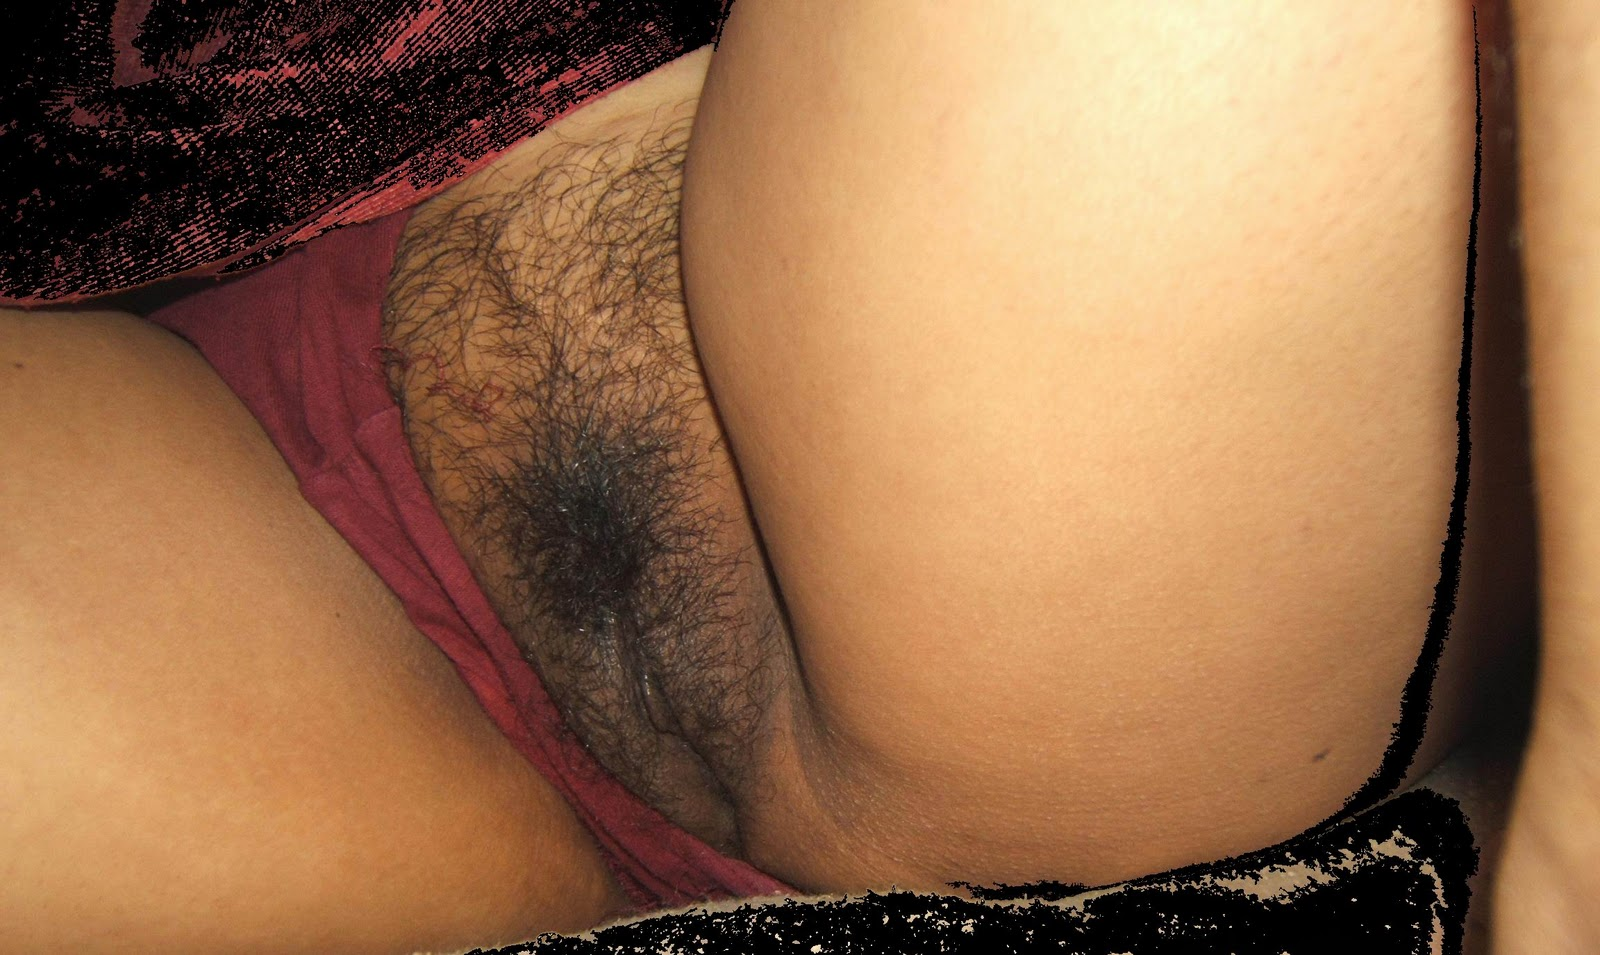 Tamil aunty hairy pussey photos speaking